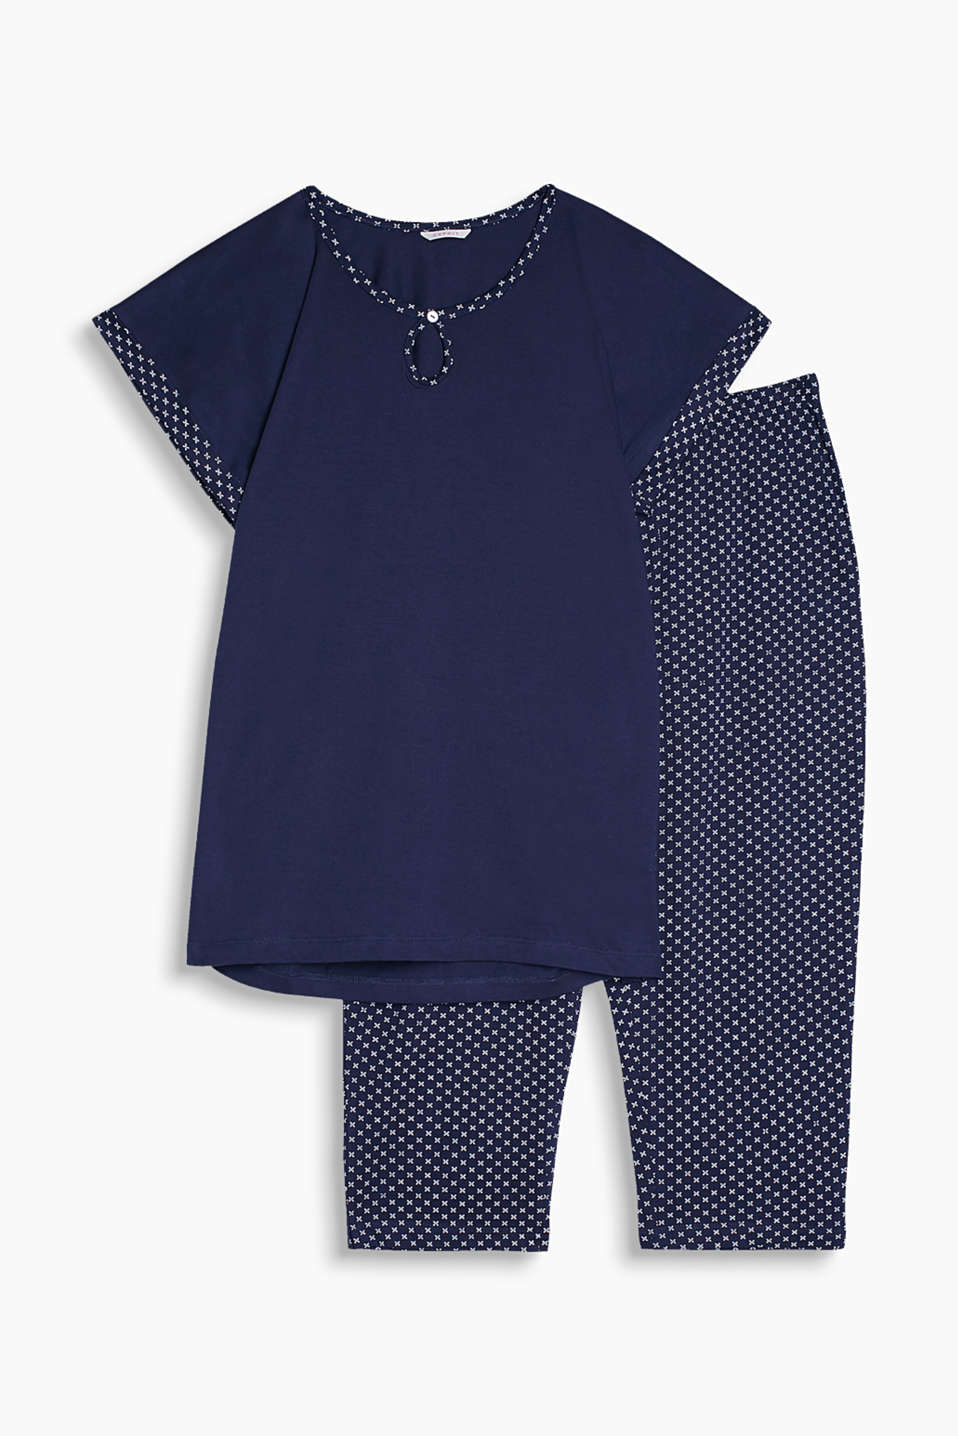 Jersey pyjamas with a casual top and patterned Capris in pure cotton